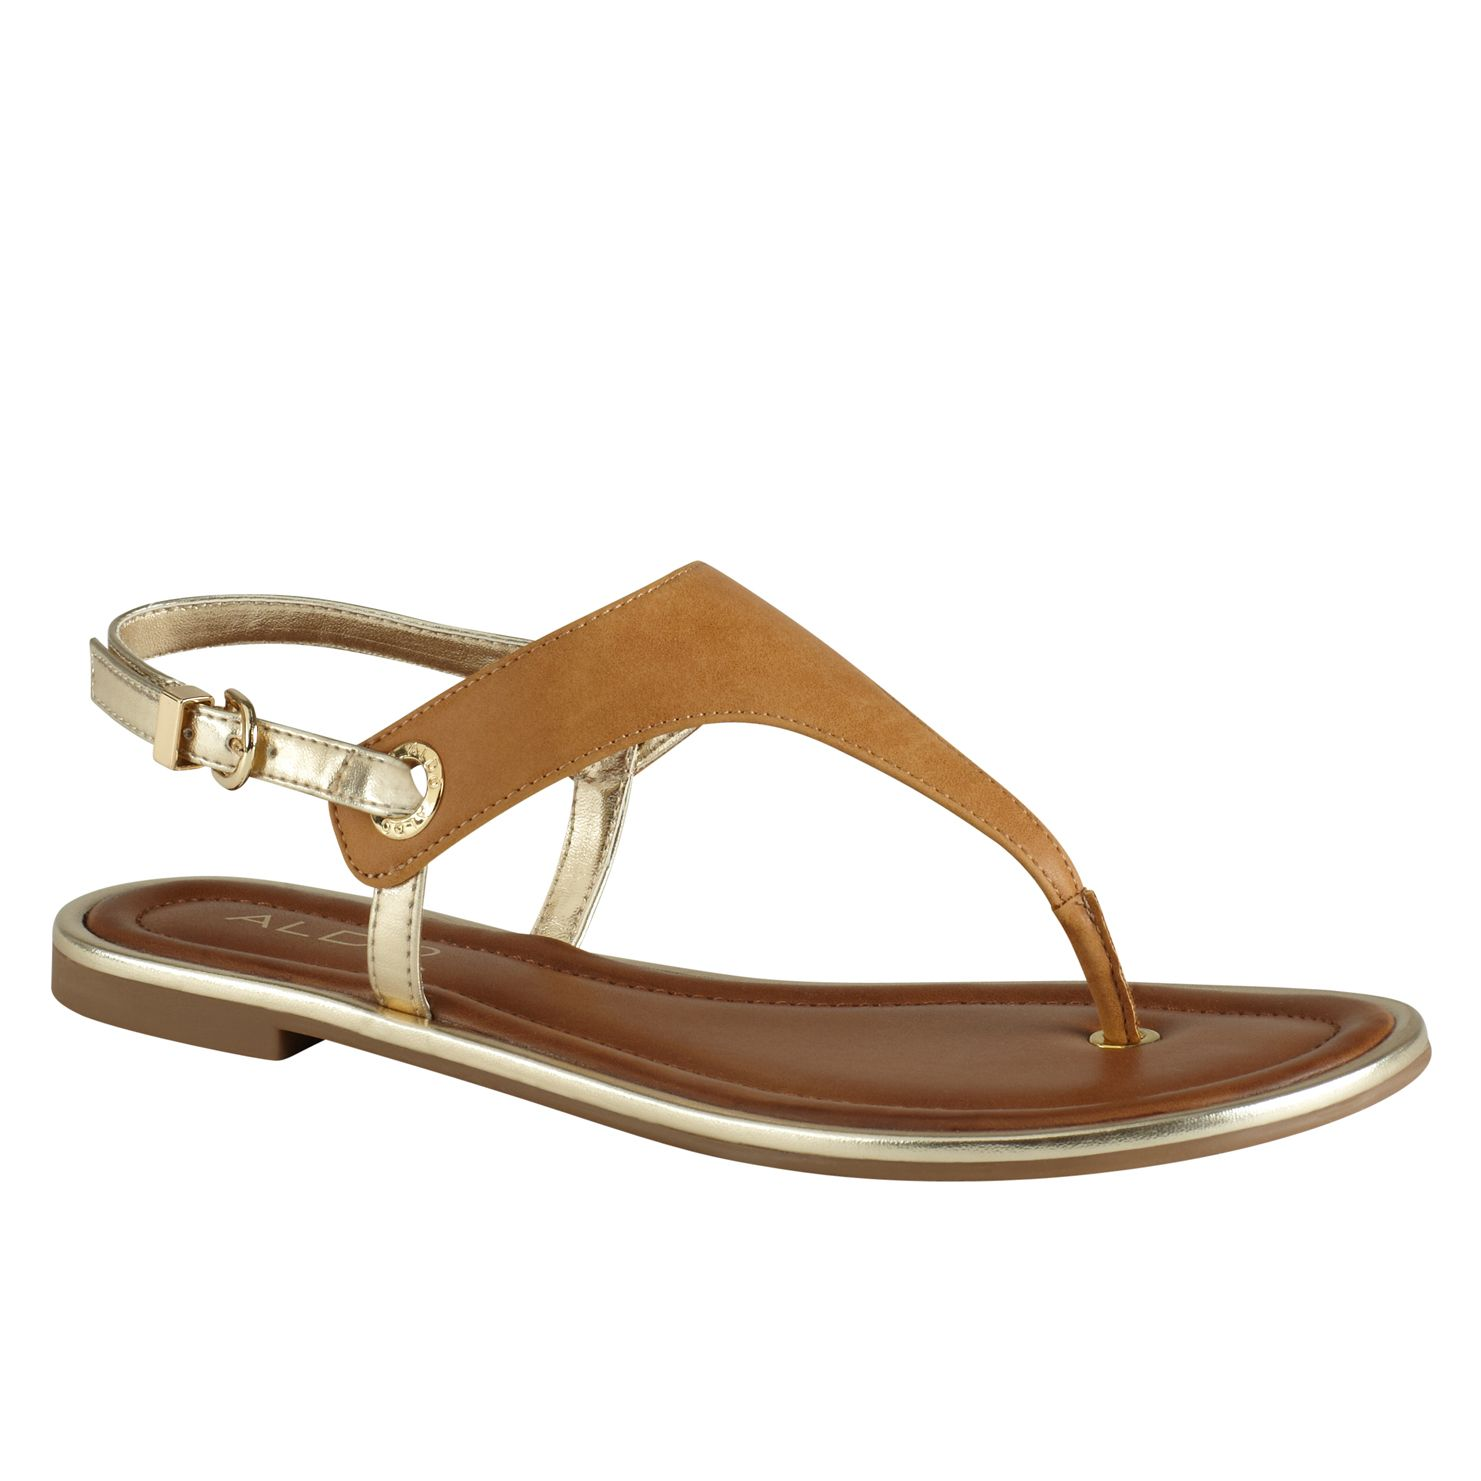 Lemacks flat t-strap sandals